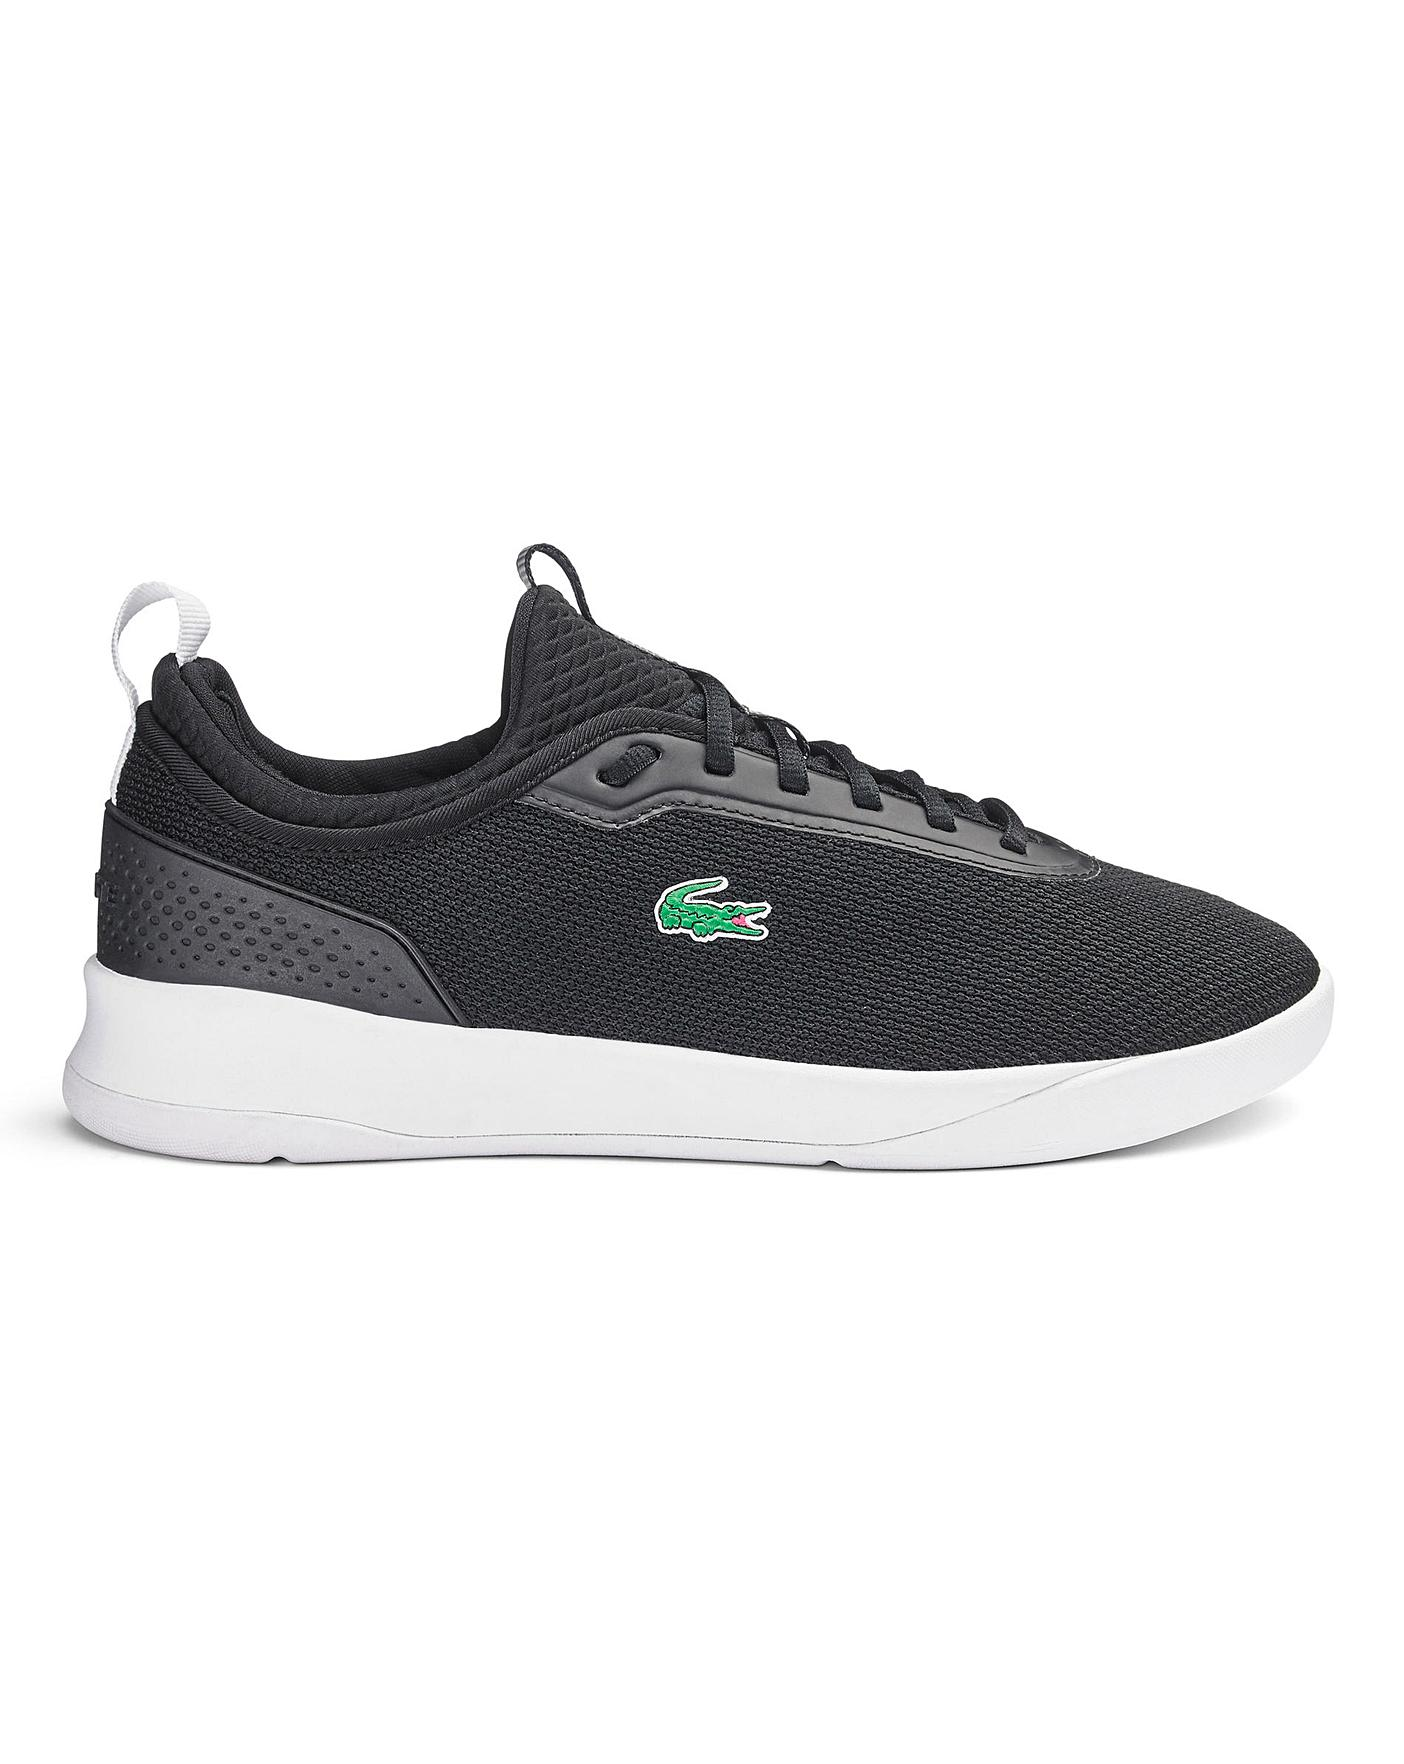 Lacoste LT Spirit Mens Trainers | Oxendales